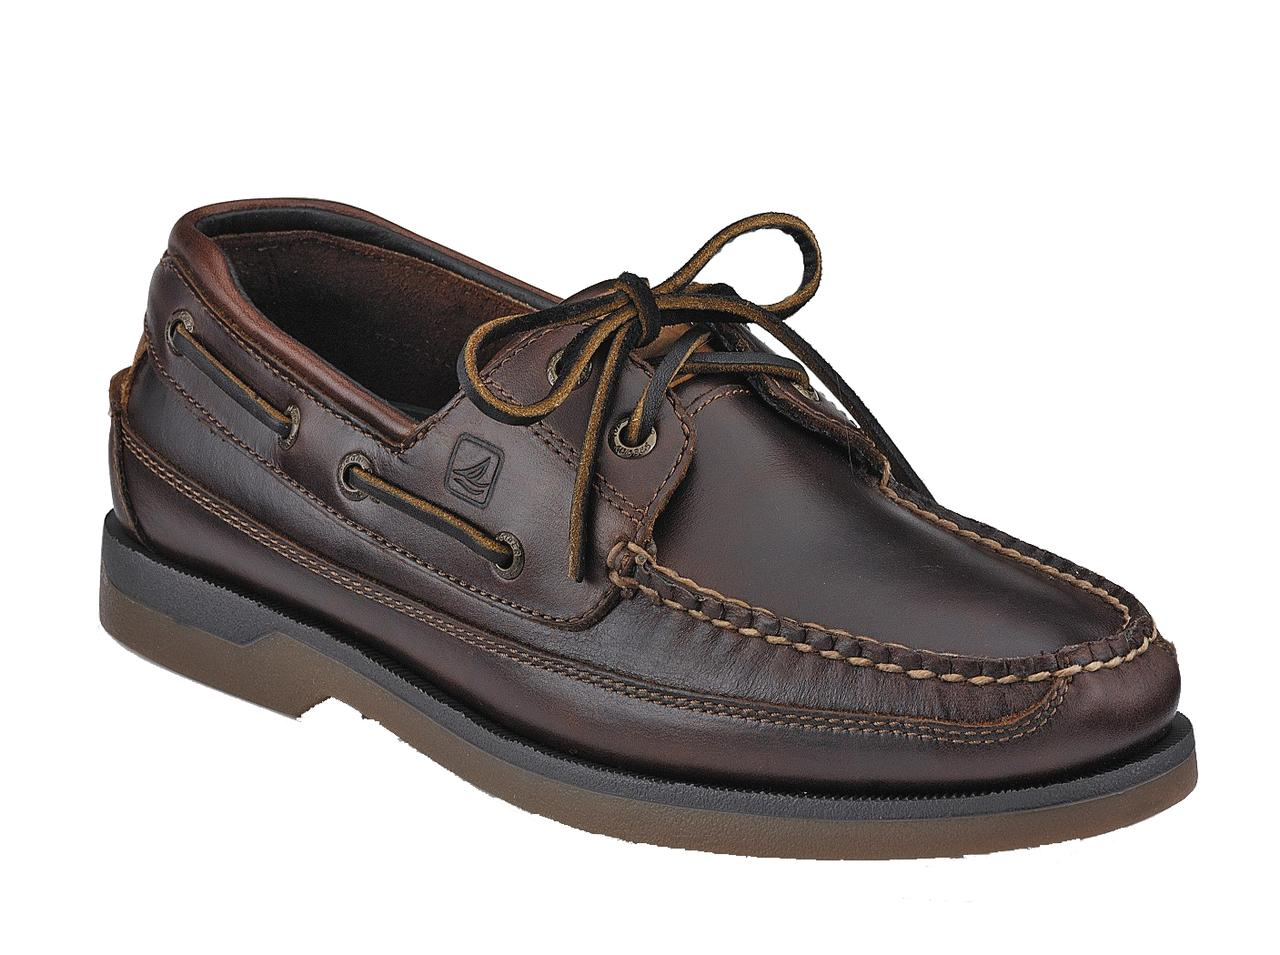 Men's Mako 2- Eye Canoe Moc Boat Shoe